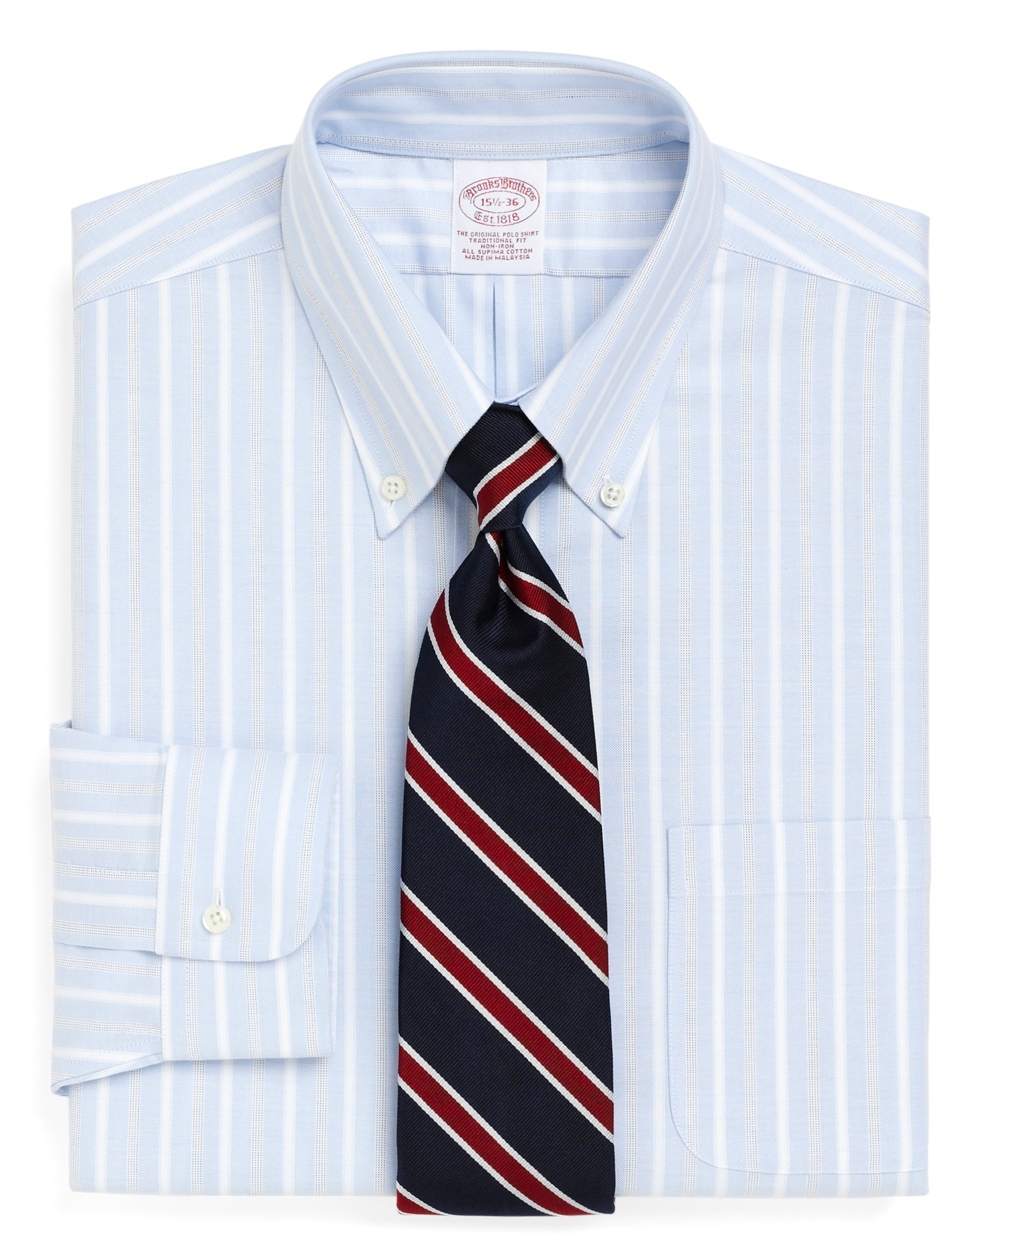 Brooks brothers supima cotton noniron traditional fit Brooks brothers shirt size guide